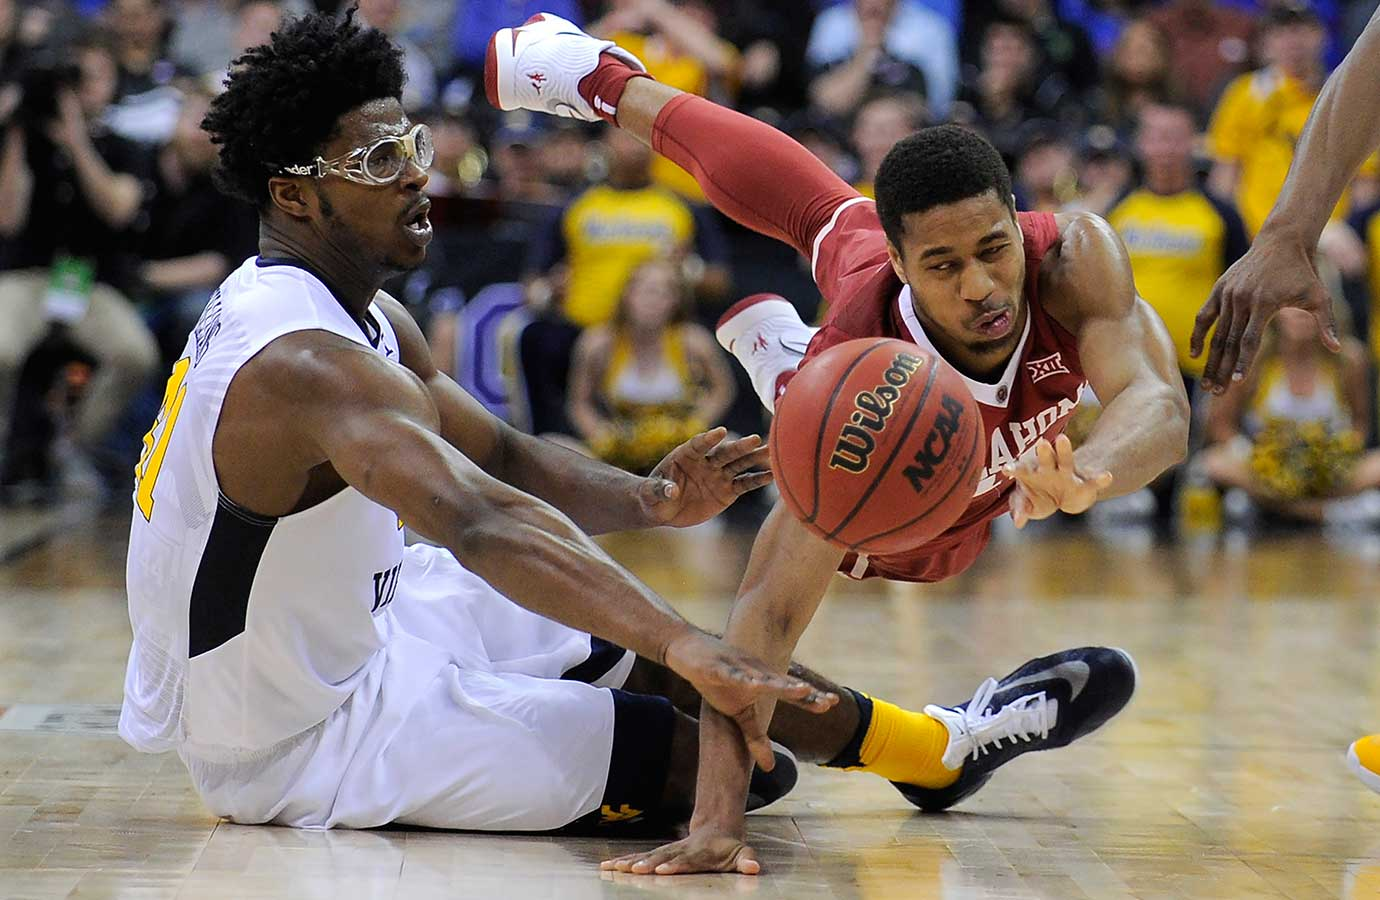 Isaiah Cousins of Oklahoma looses the ball and is charged with traveling against Devin Williams of West Virginia.